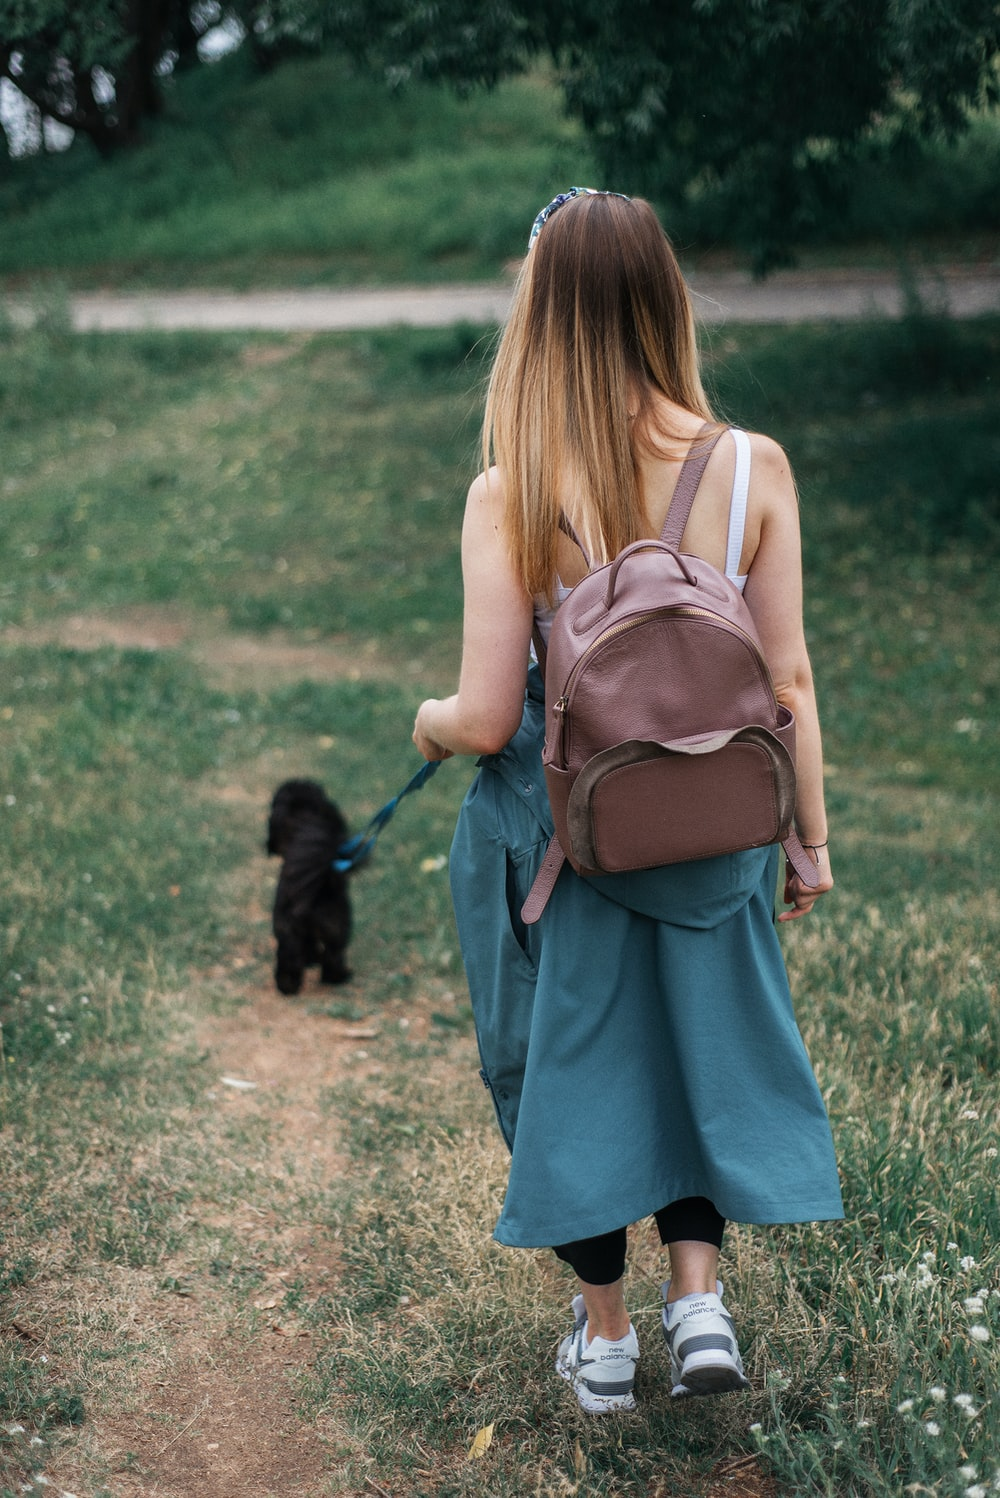 woman in blue dress carrying black dog on green grass field during daytime  photo – Free Strap Image on Unsplash